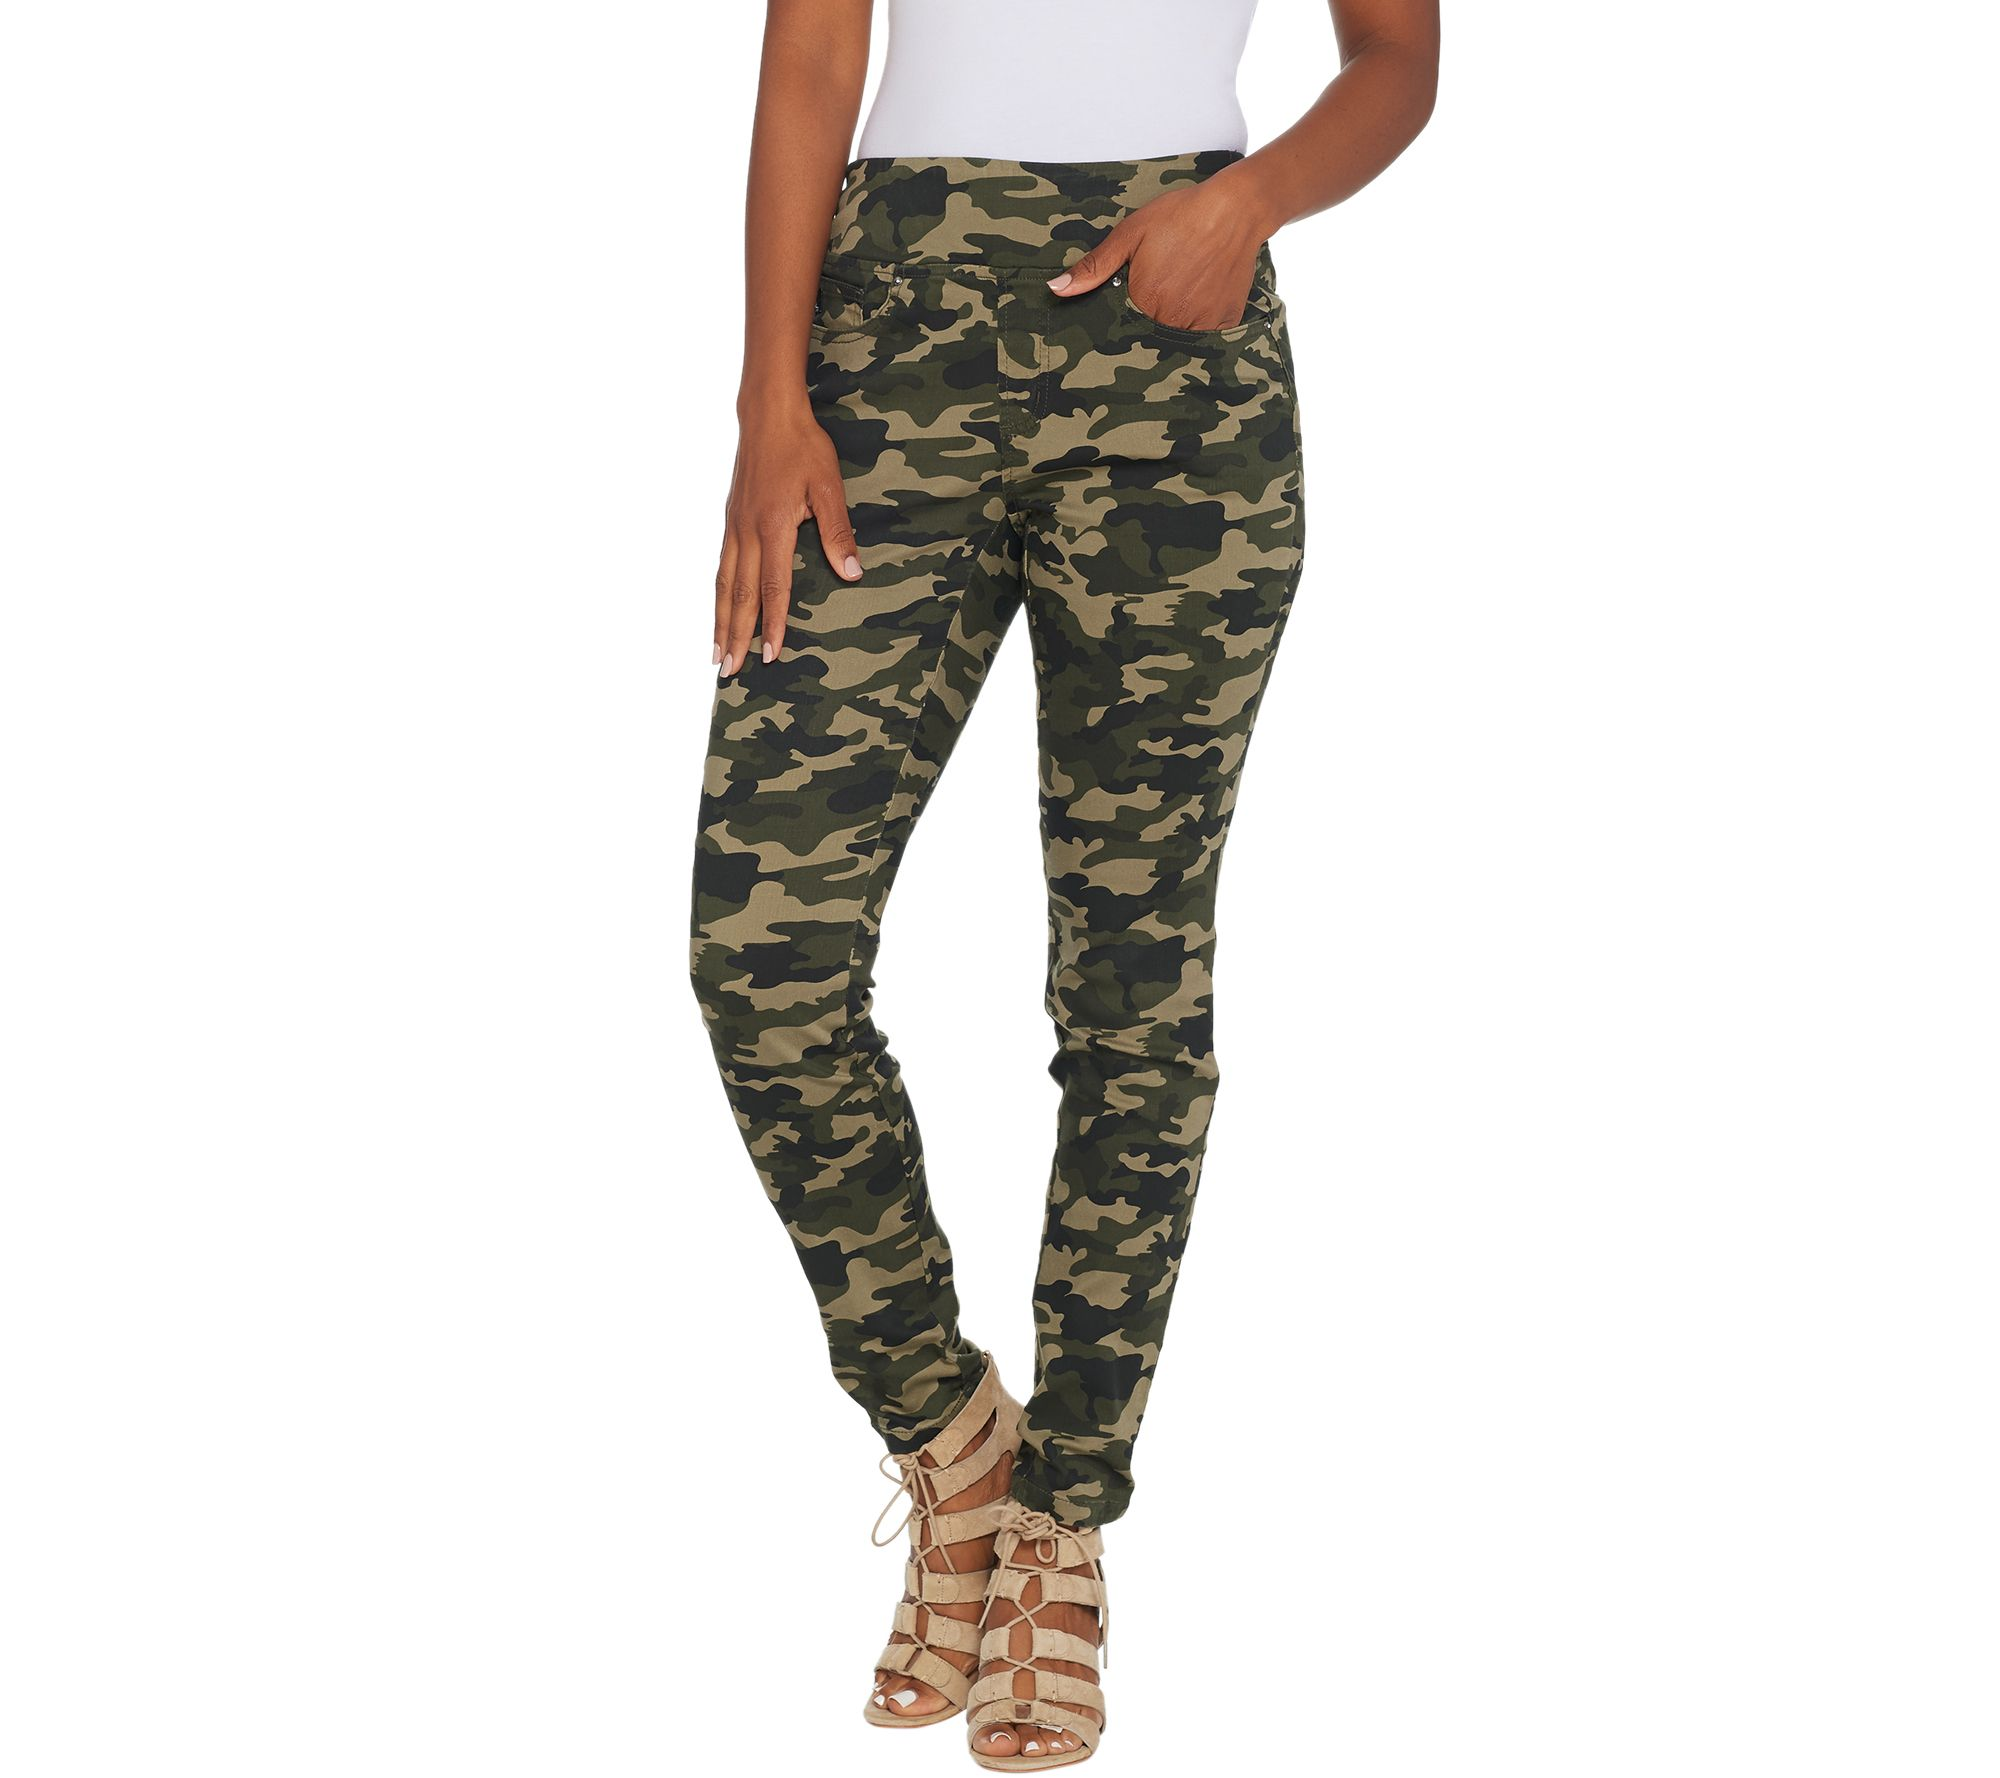 Belle Kim Gravel TripleLuxe Twill Pull-On Legging A309949